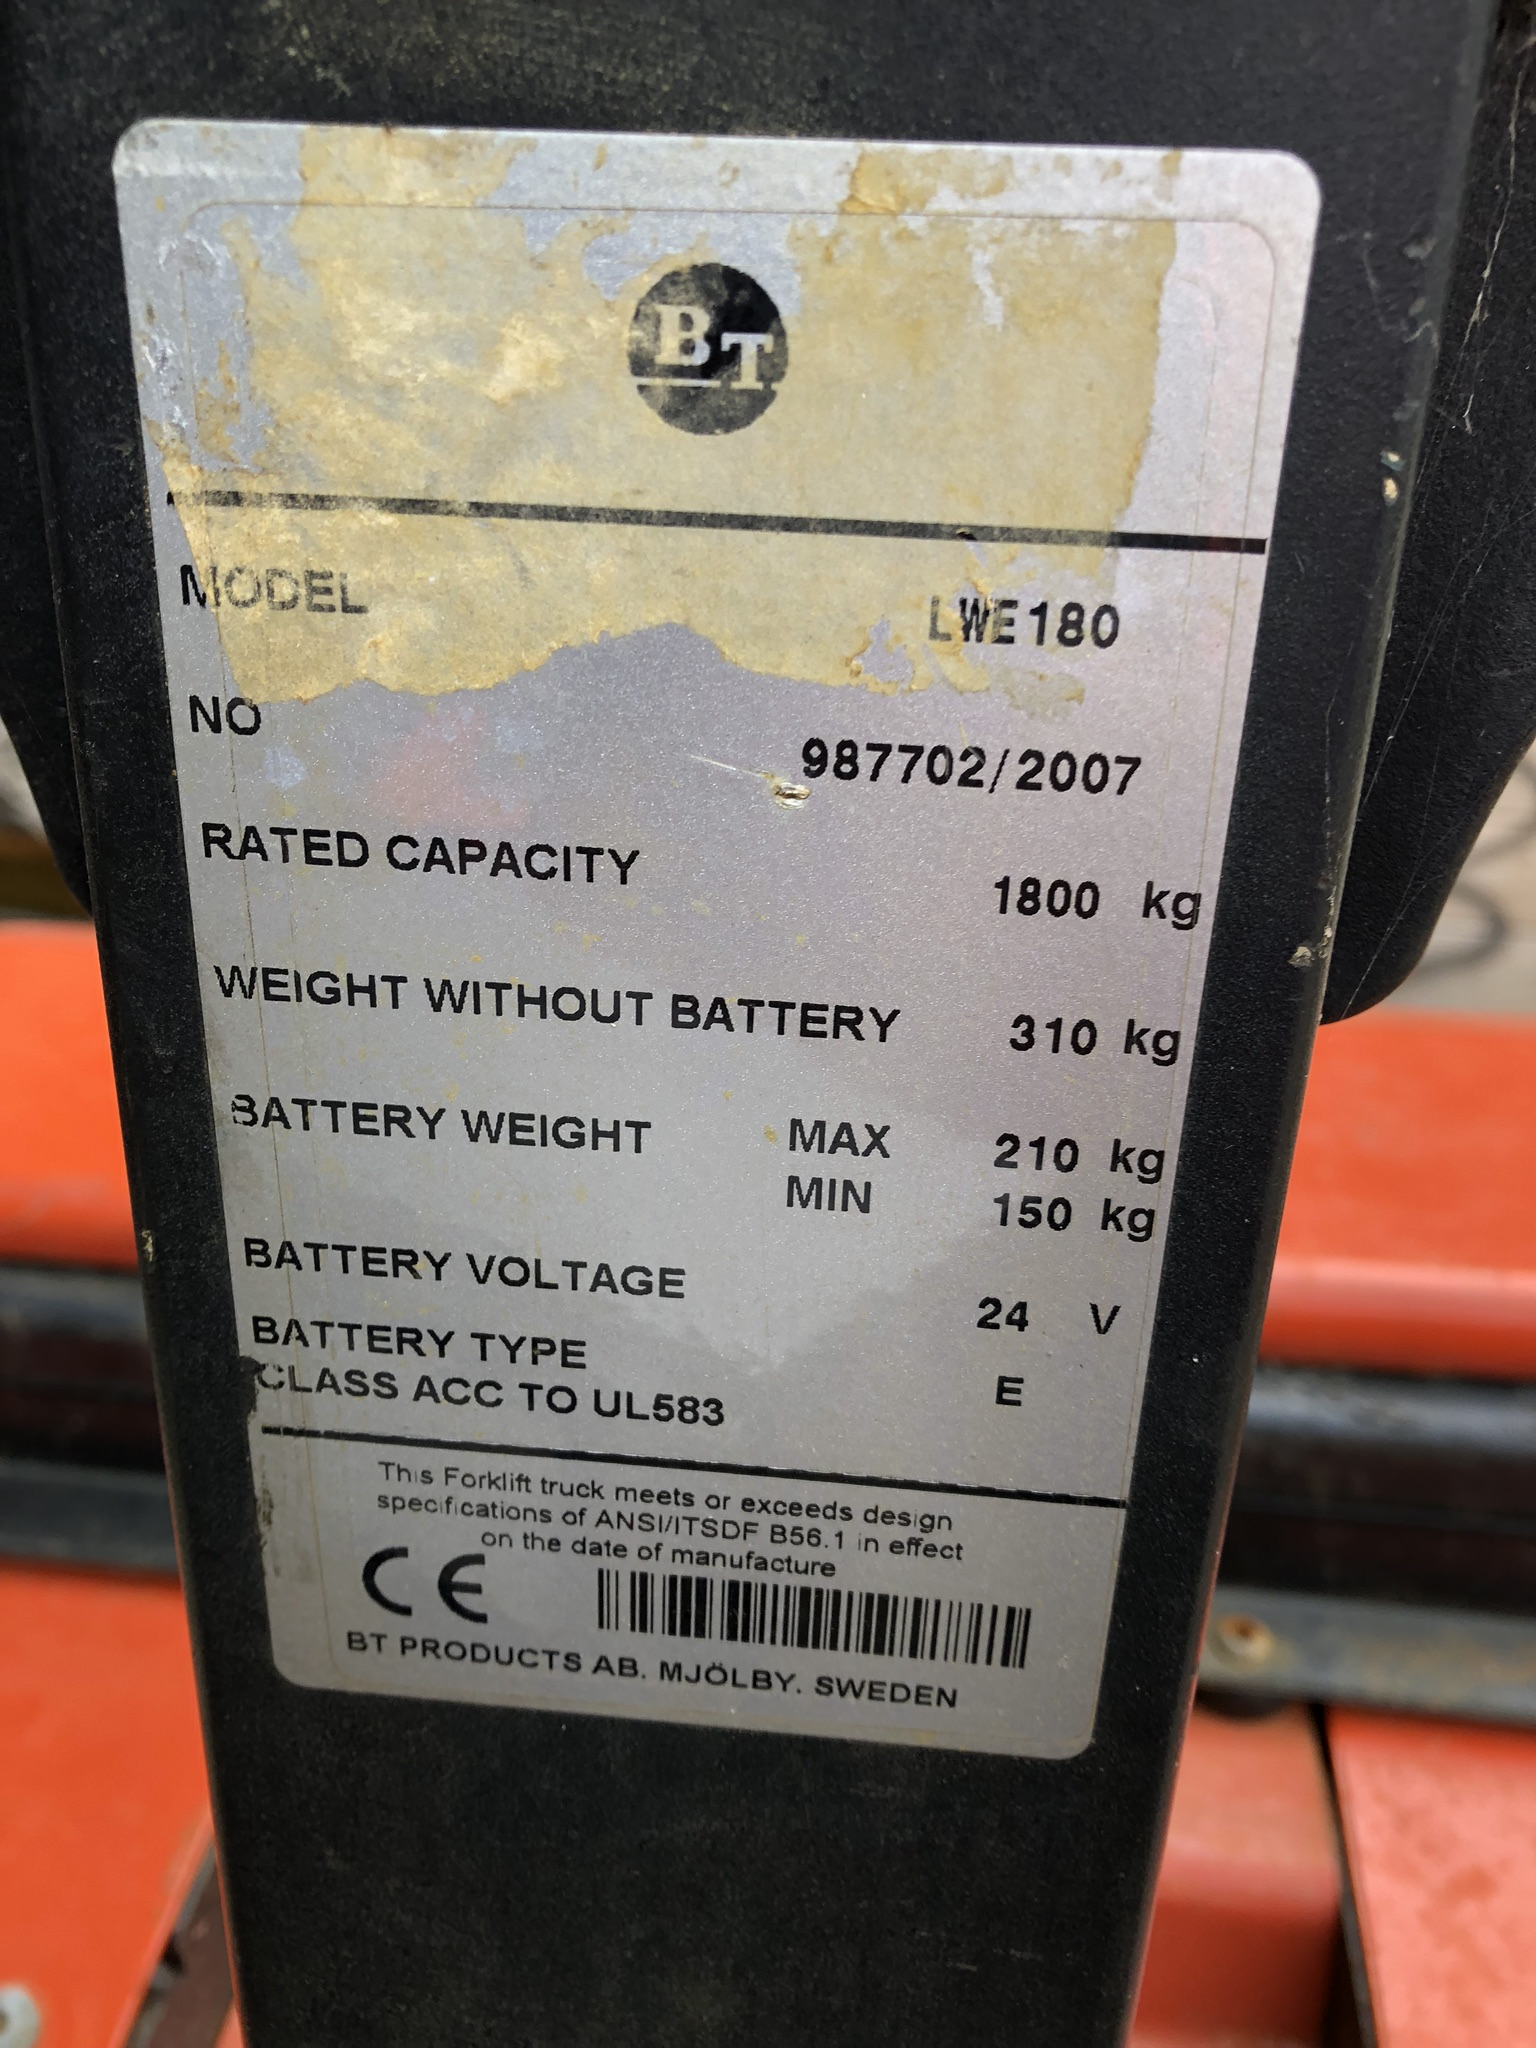 BT LWE180 1800kg Electric Pallet Truck, serial no. 987702, year of manufacture 2007, lift out charge - Image 3 of 3